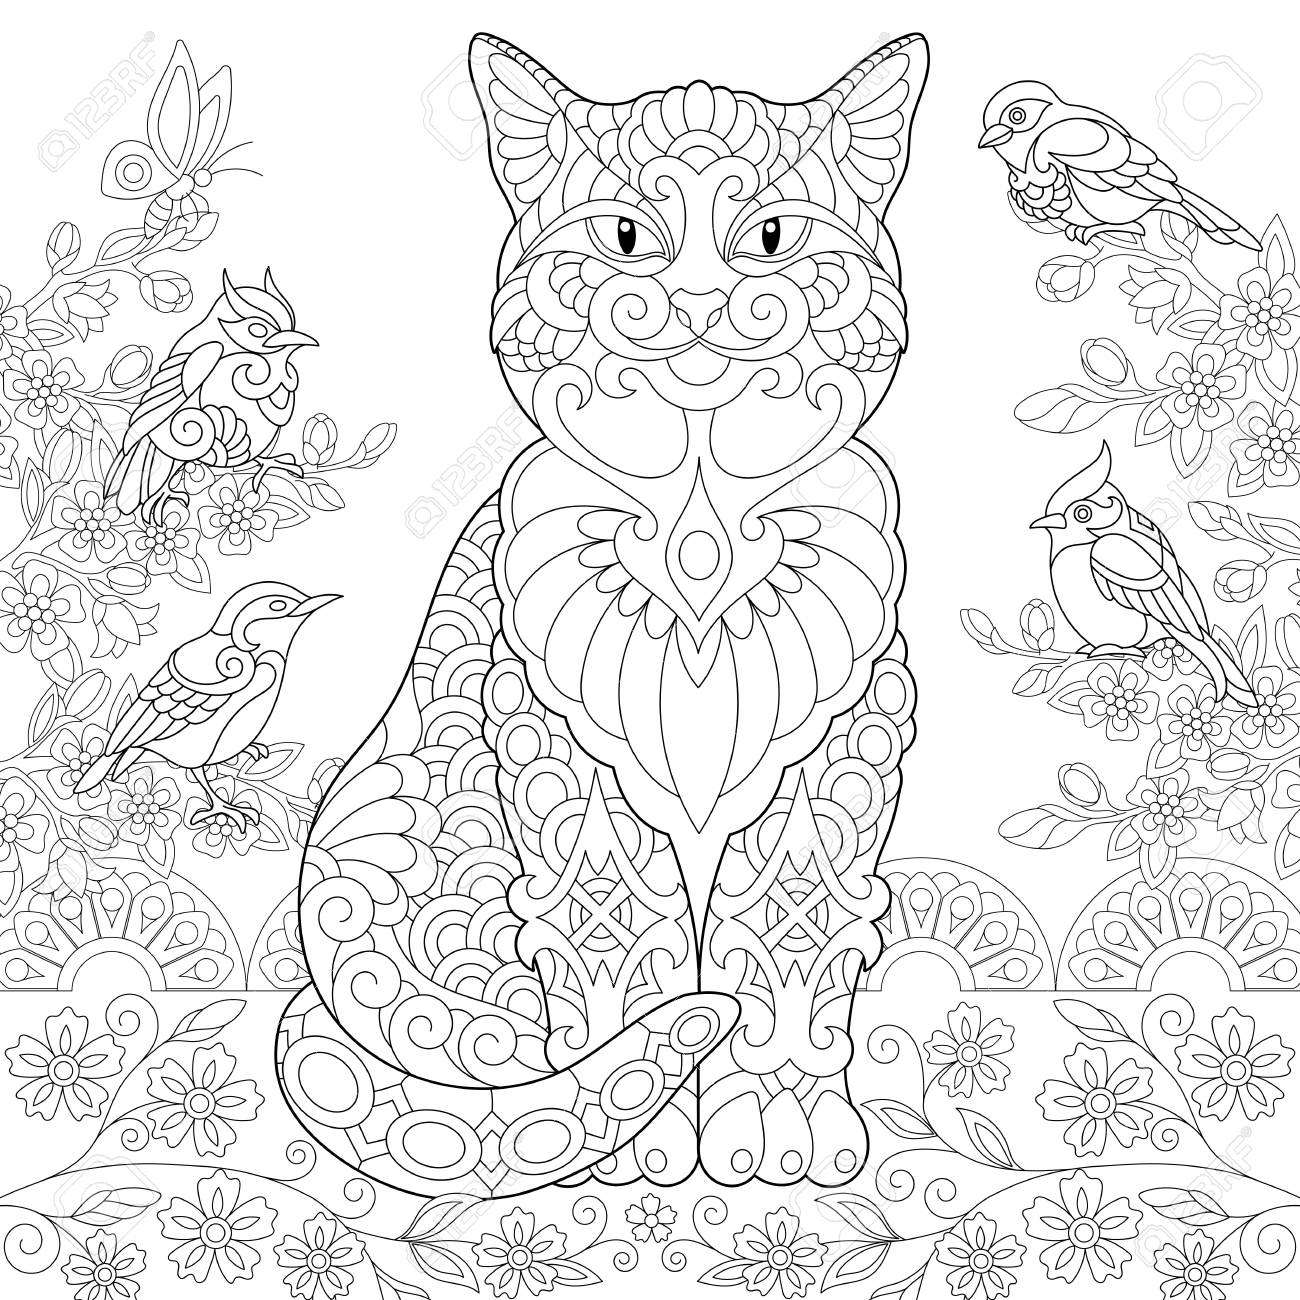 cat and spring birds in the coloring colouring adult book idea freehand sketch drawing coloring pages Adult Coloring Page Cat